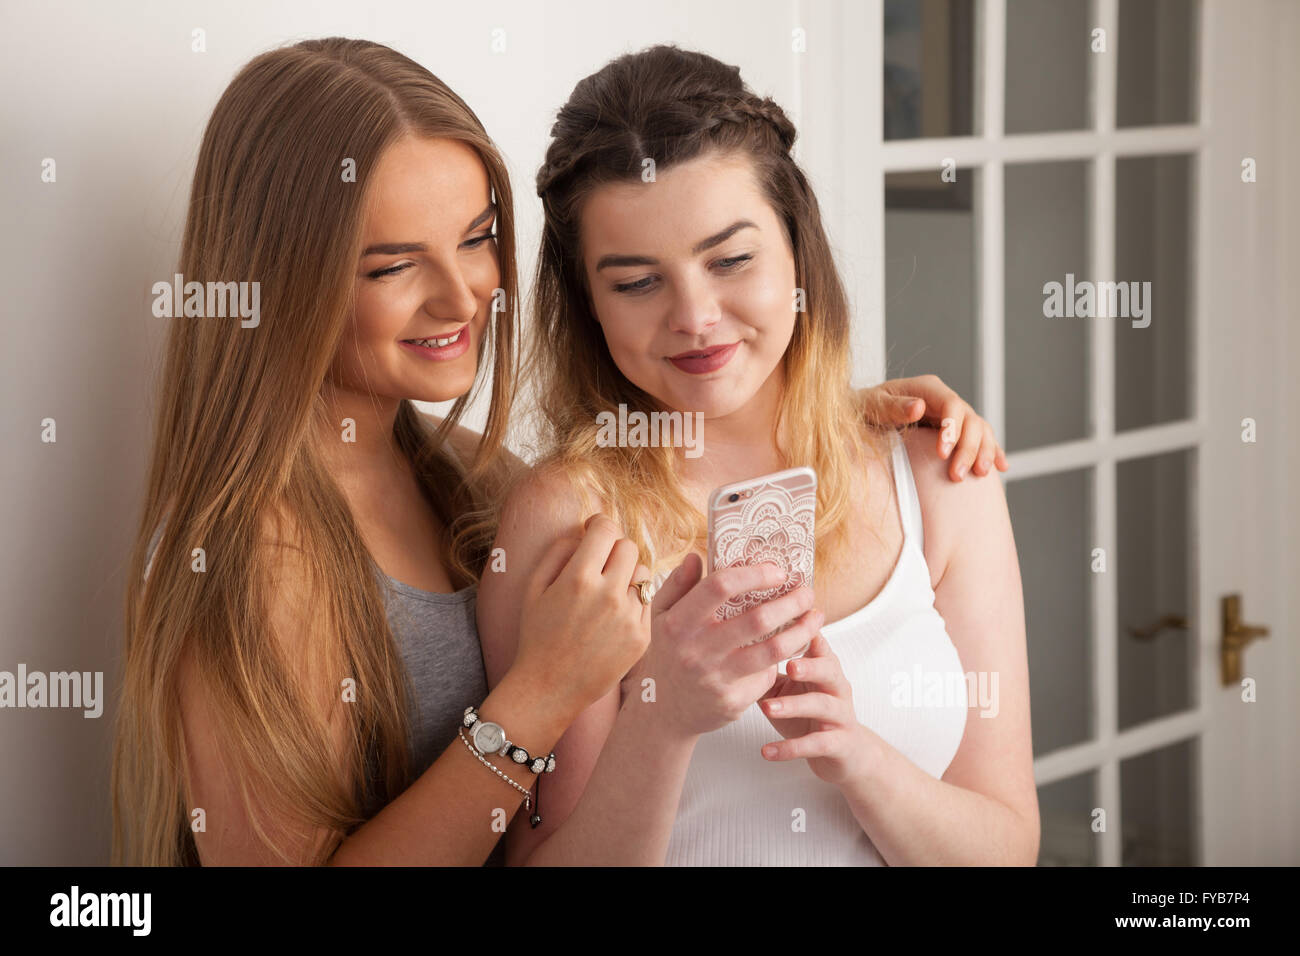 Two teenage girls looking at a mobile phone together. - Stock Image